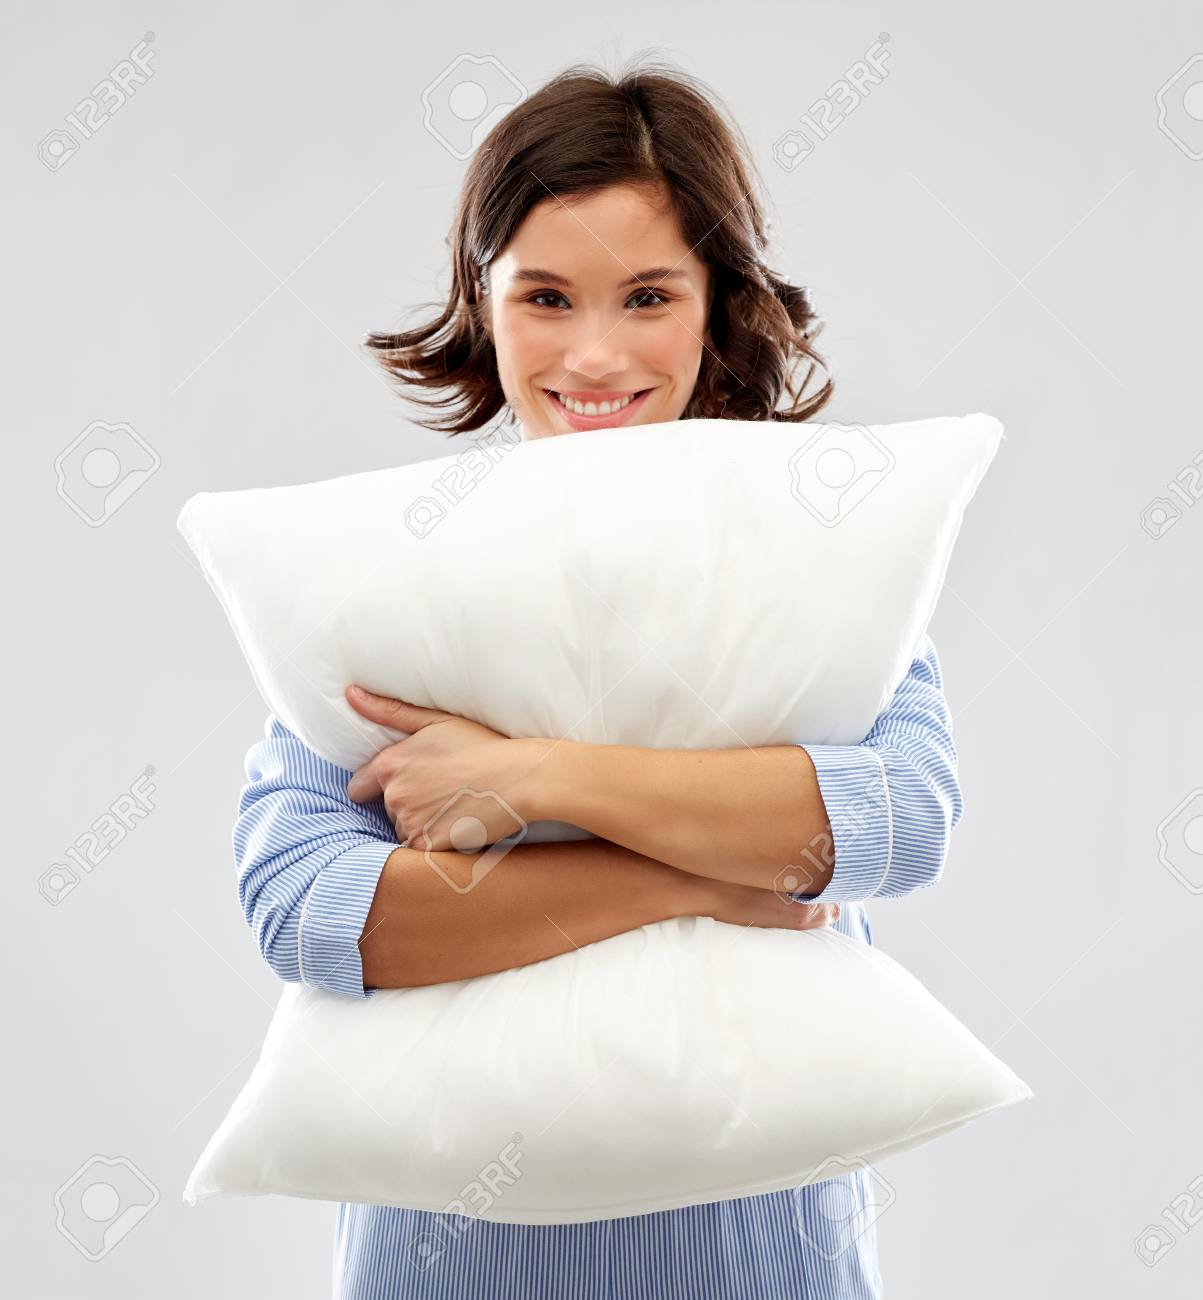 happy young woman in pajama hugging pillow - 124767093